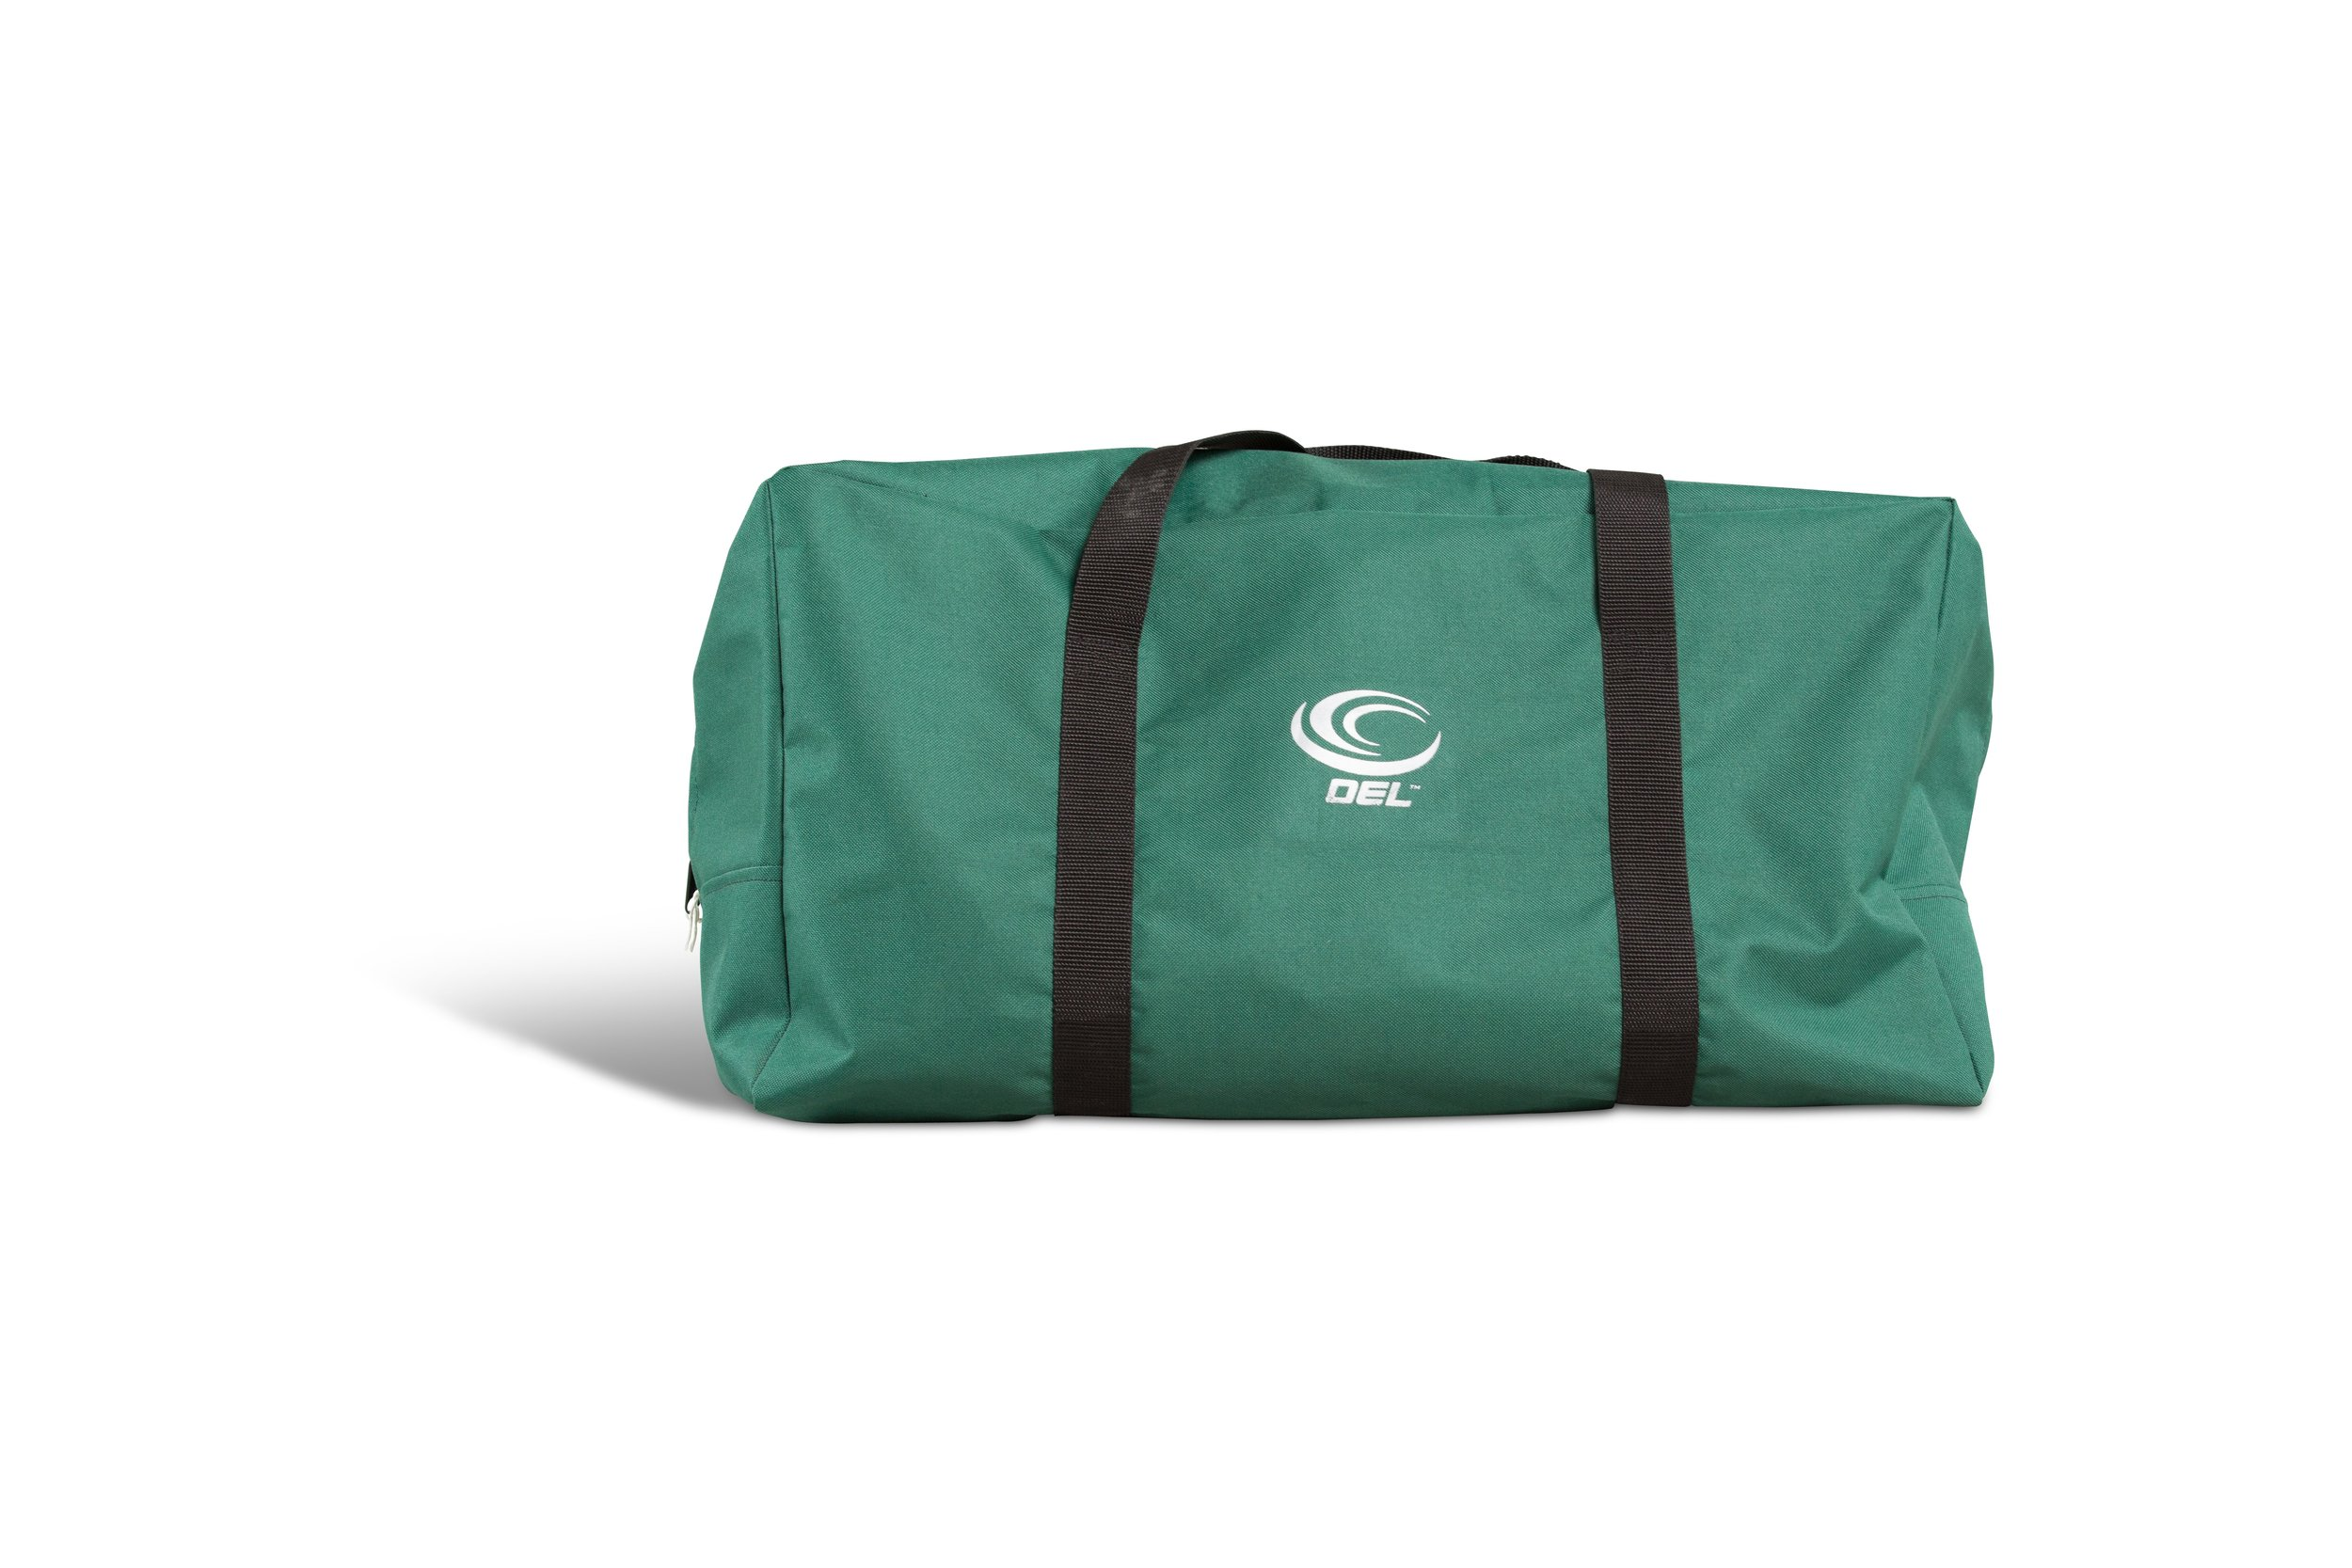 Arc Gear Bag